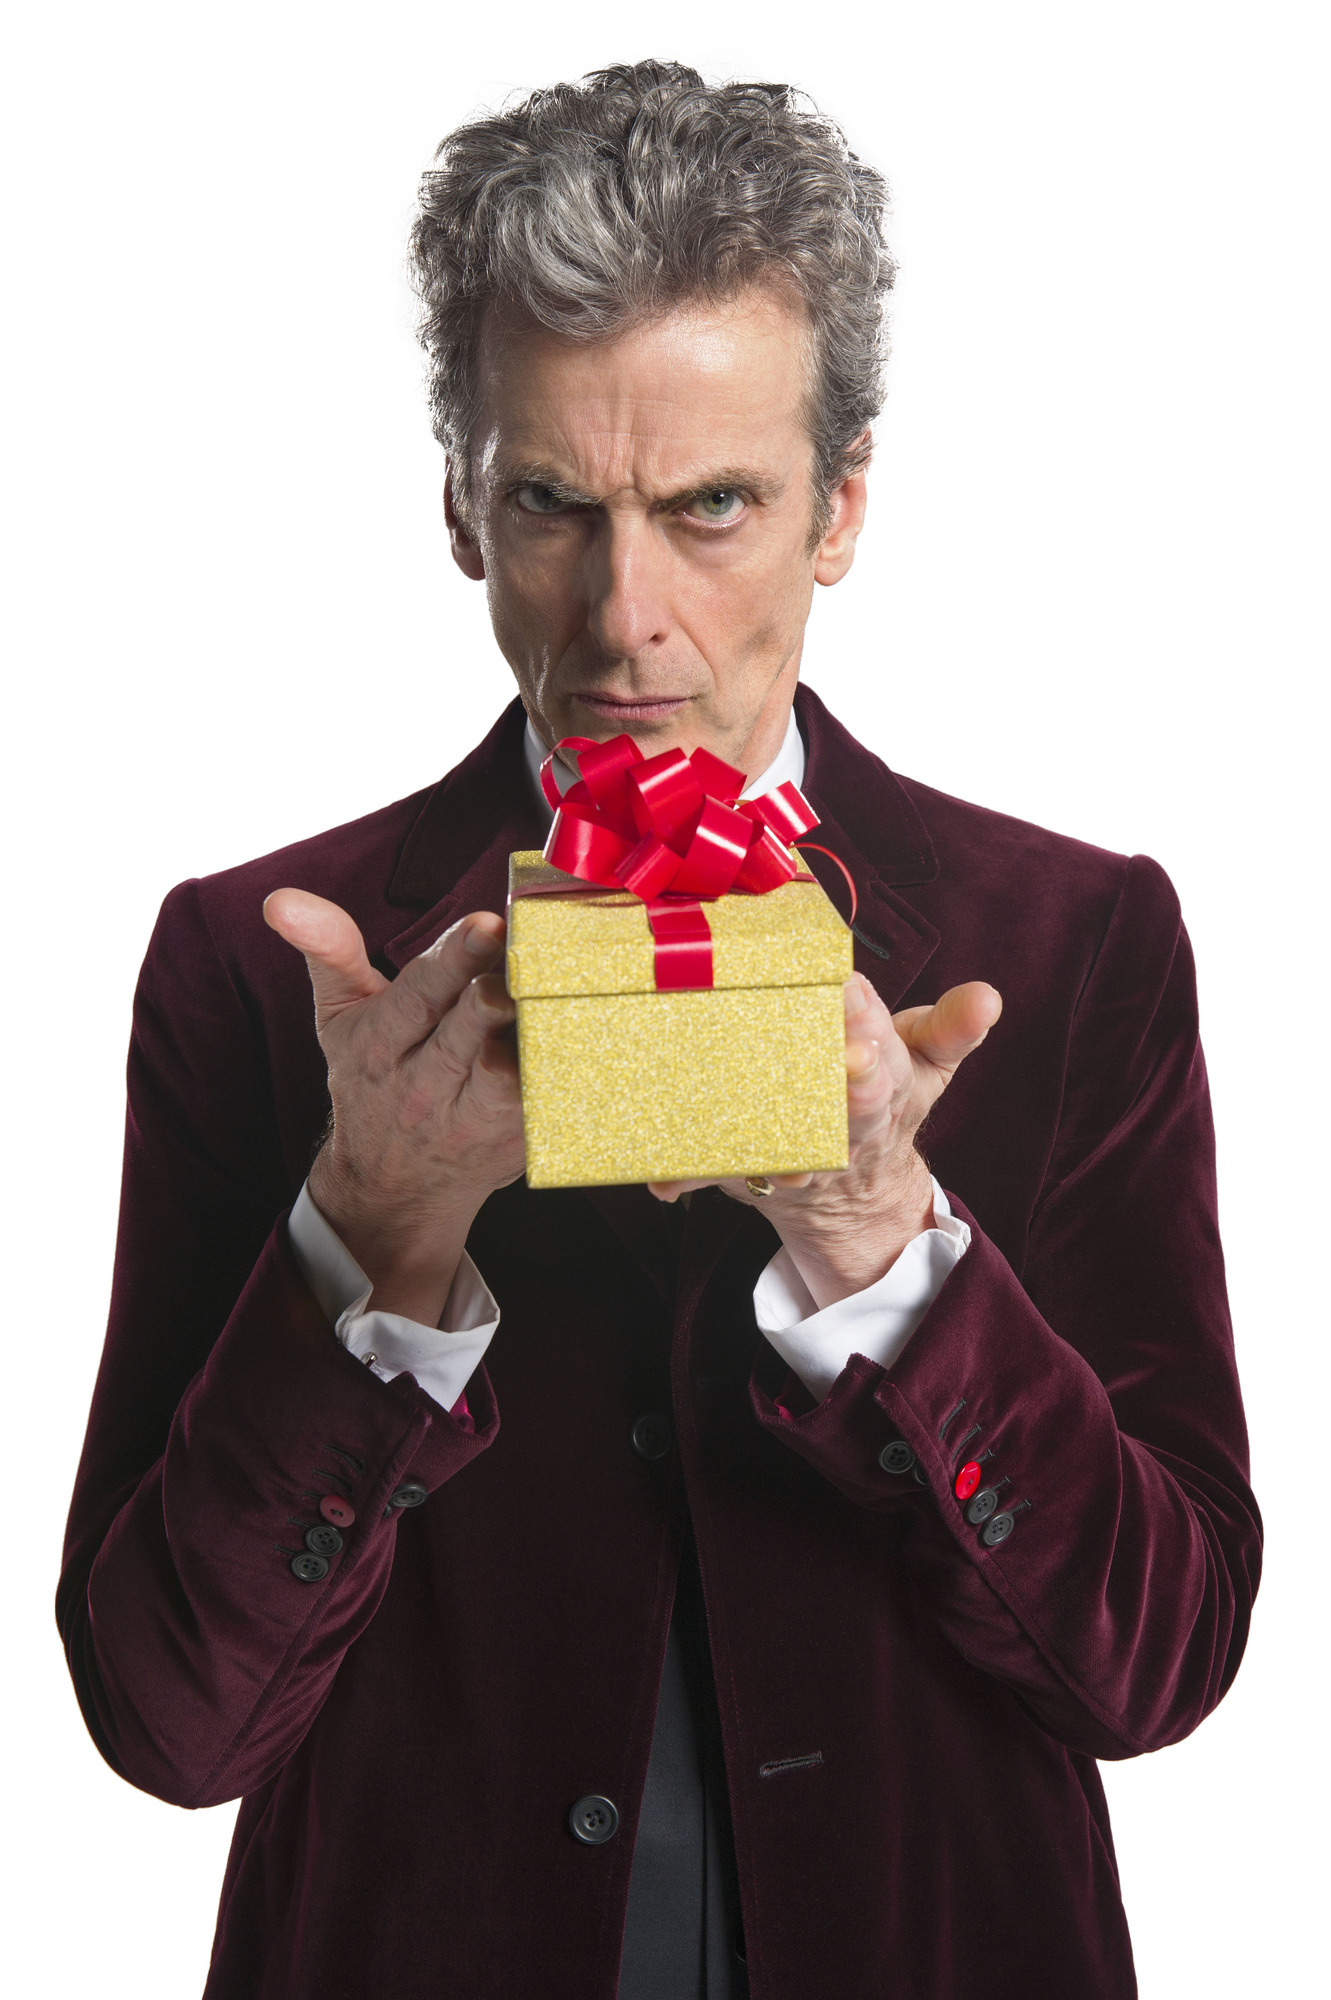 QUIZ: How well do you know the Doctor Who Christmas Specials?